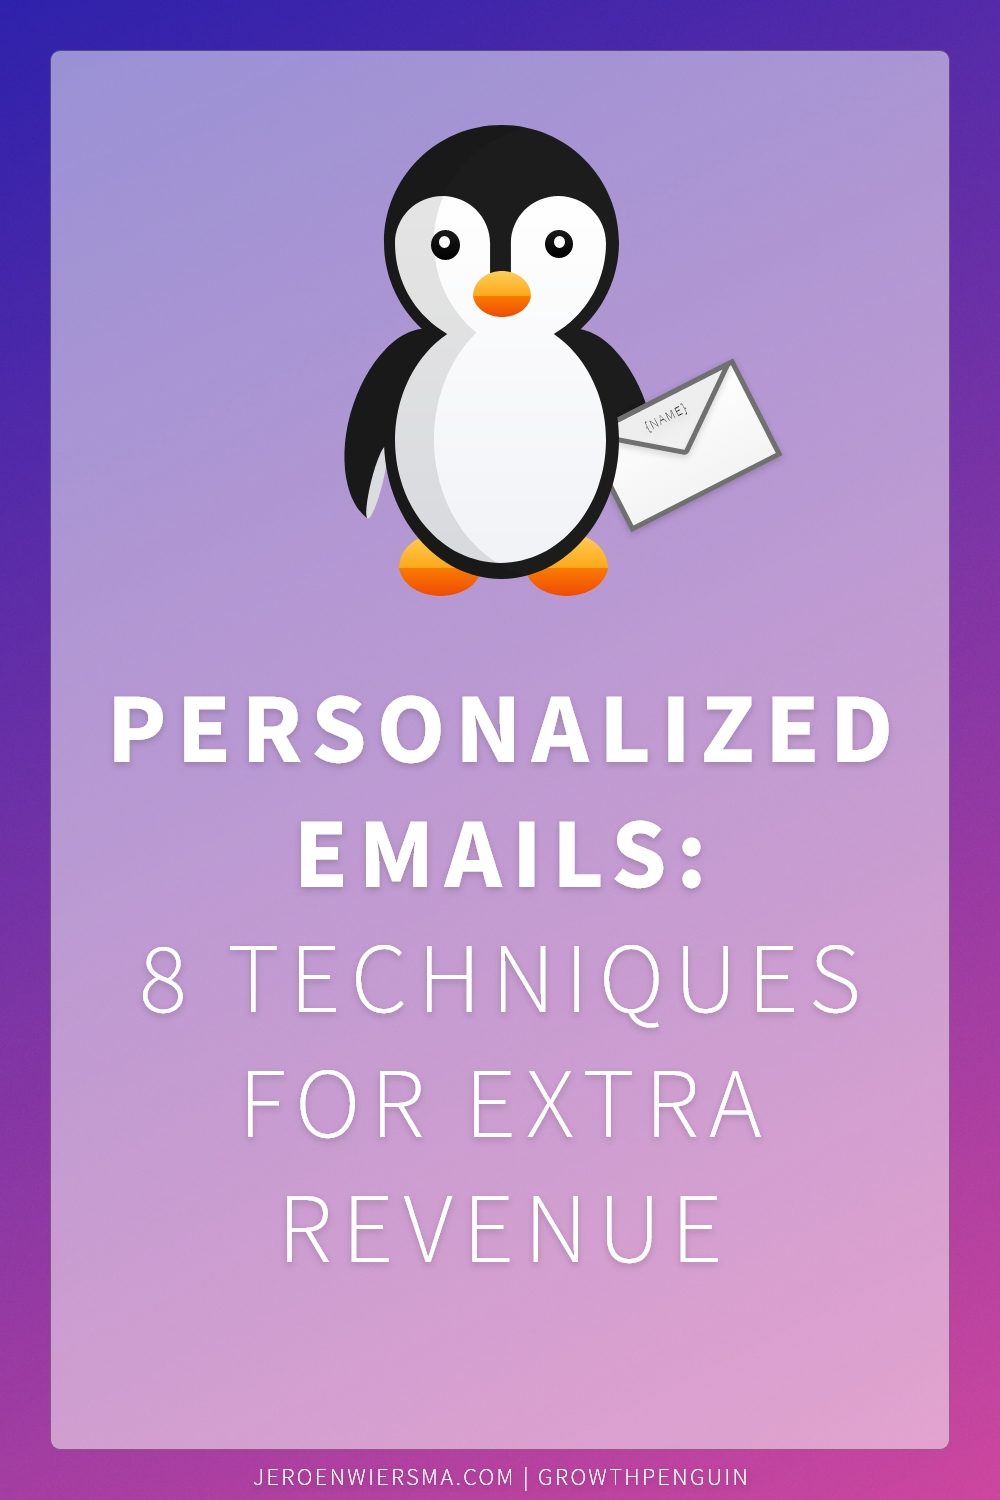 Personalized emails 8 techniques for extra revenue